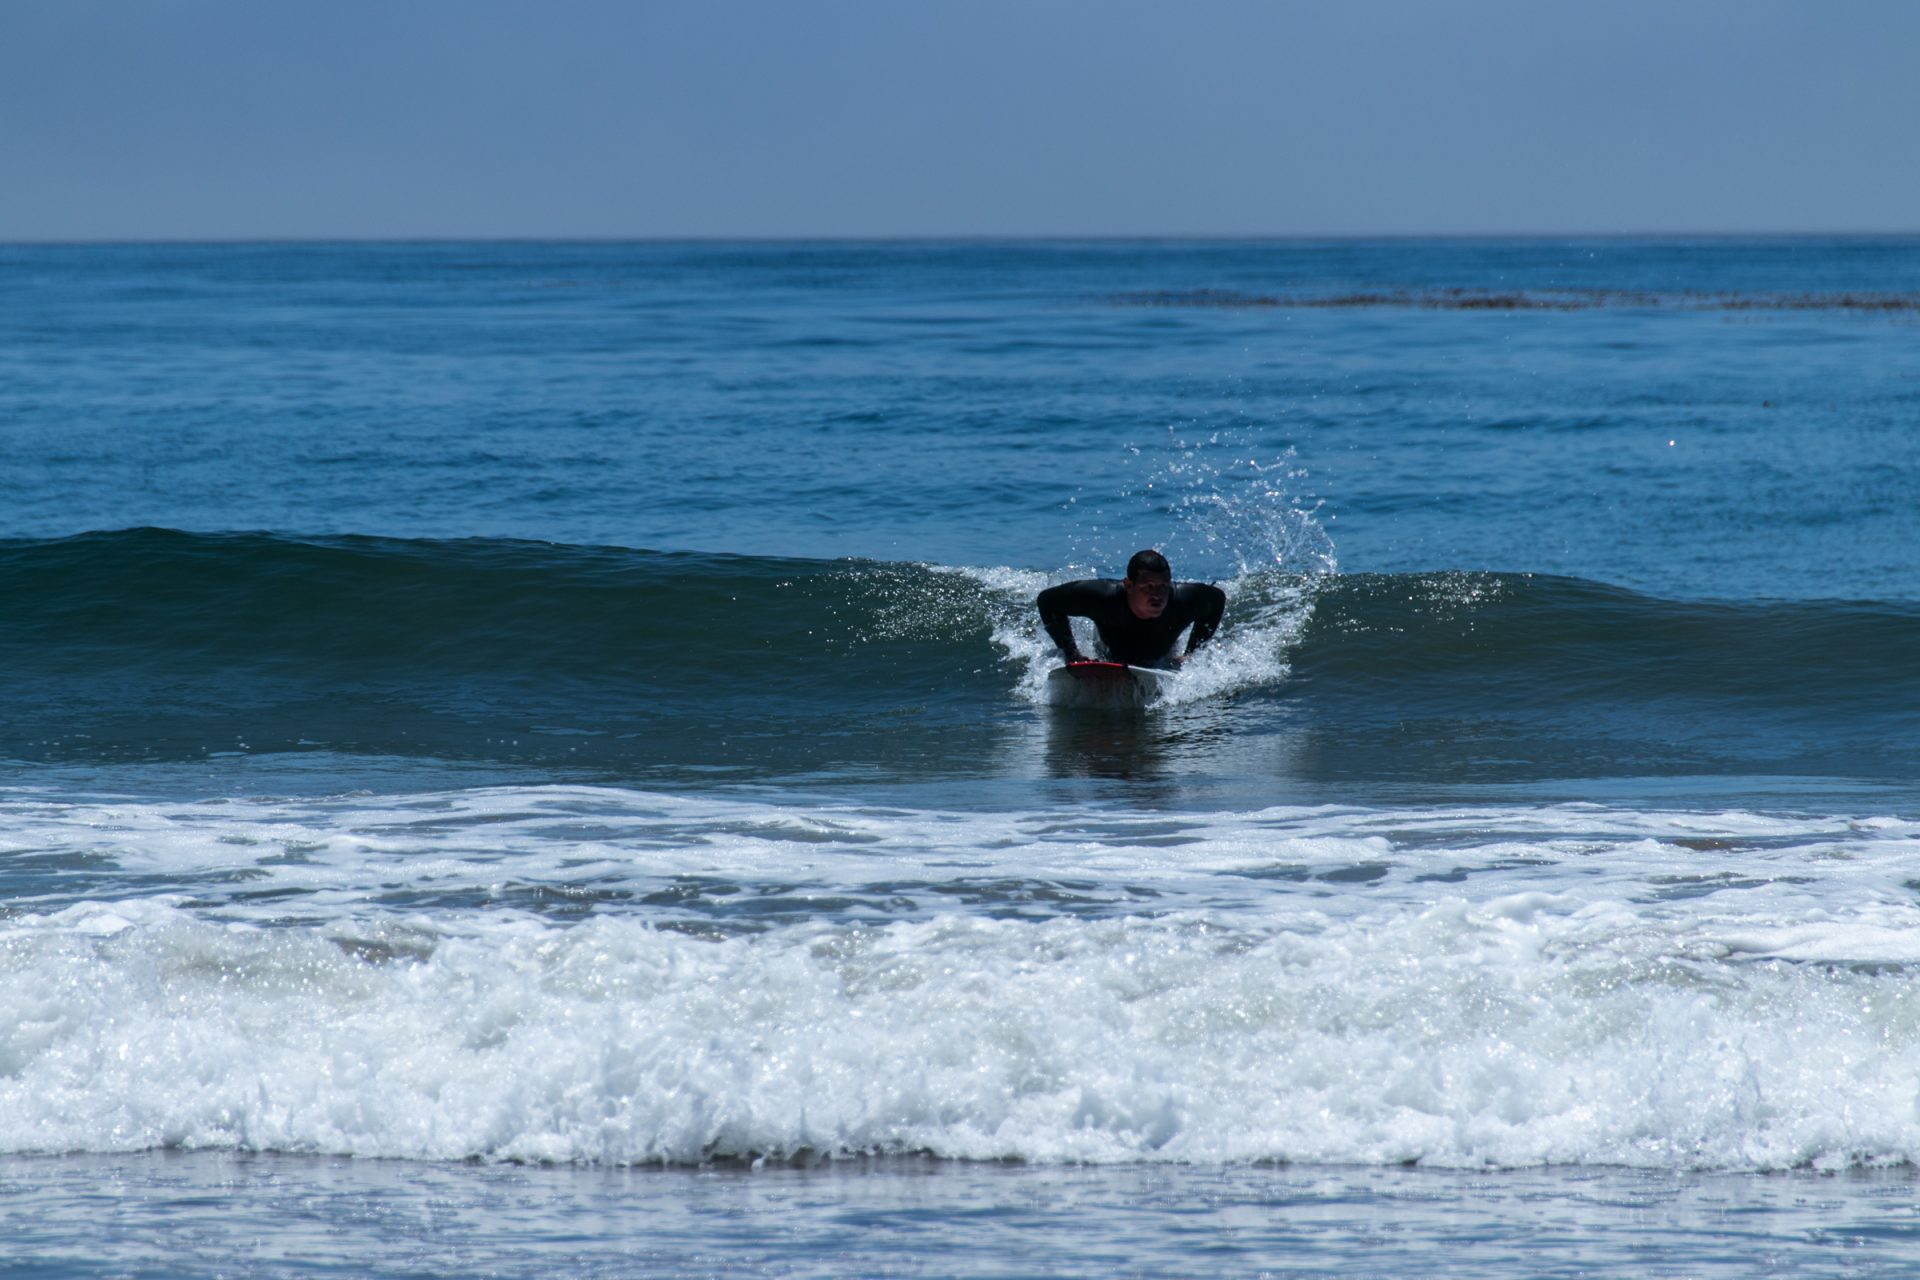 Surfer Belly Boarding On Small Waves